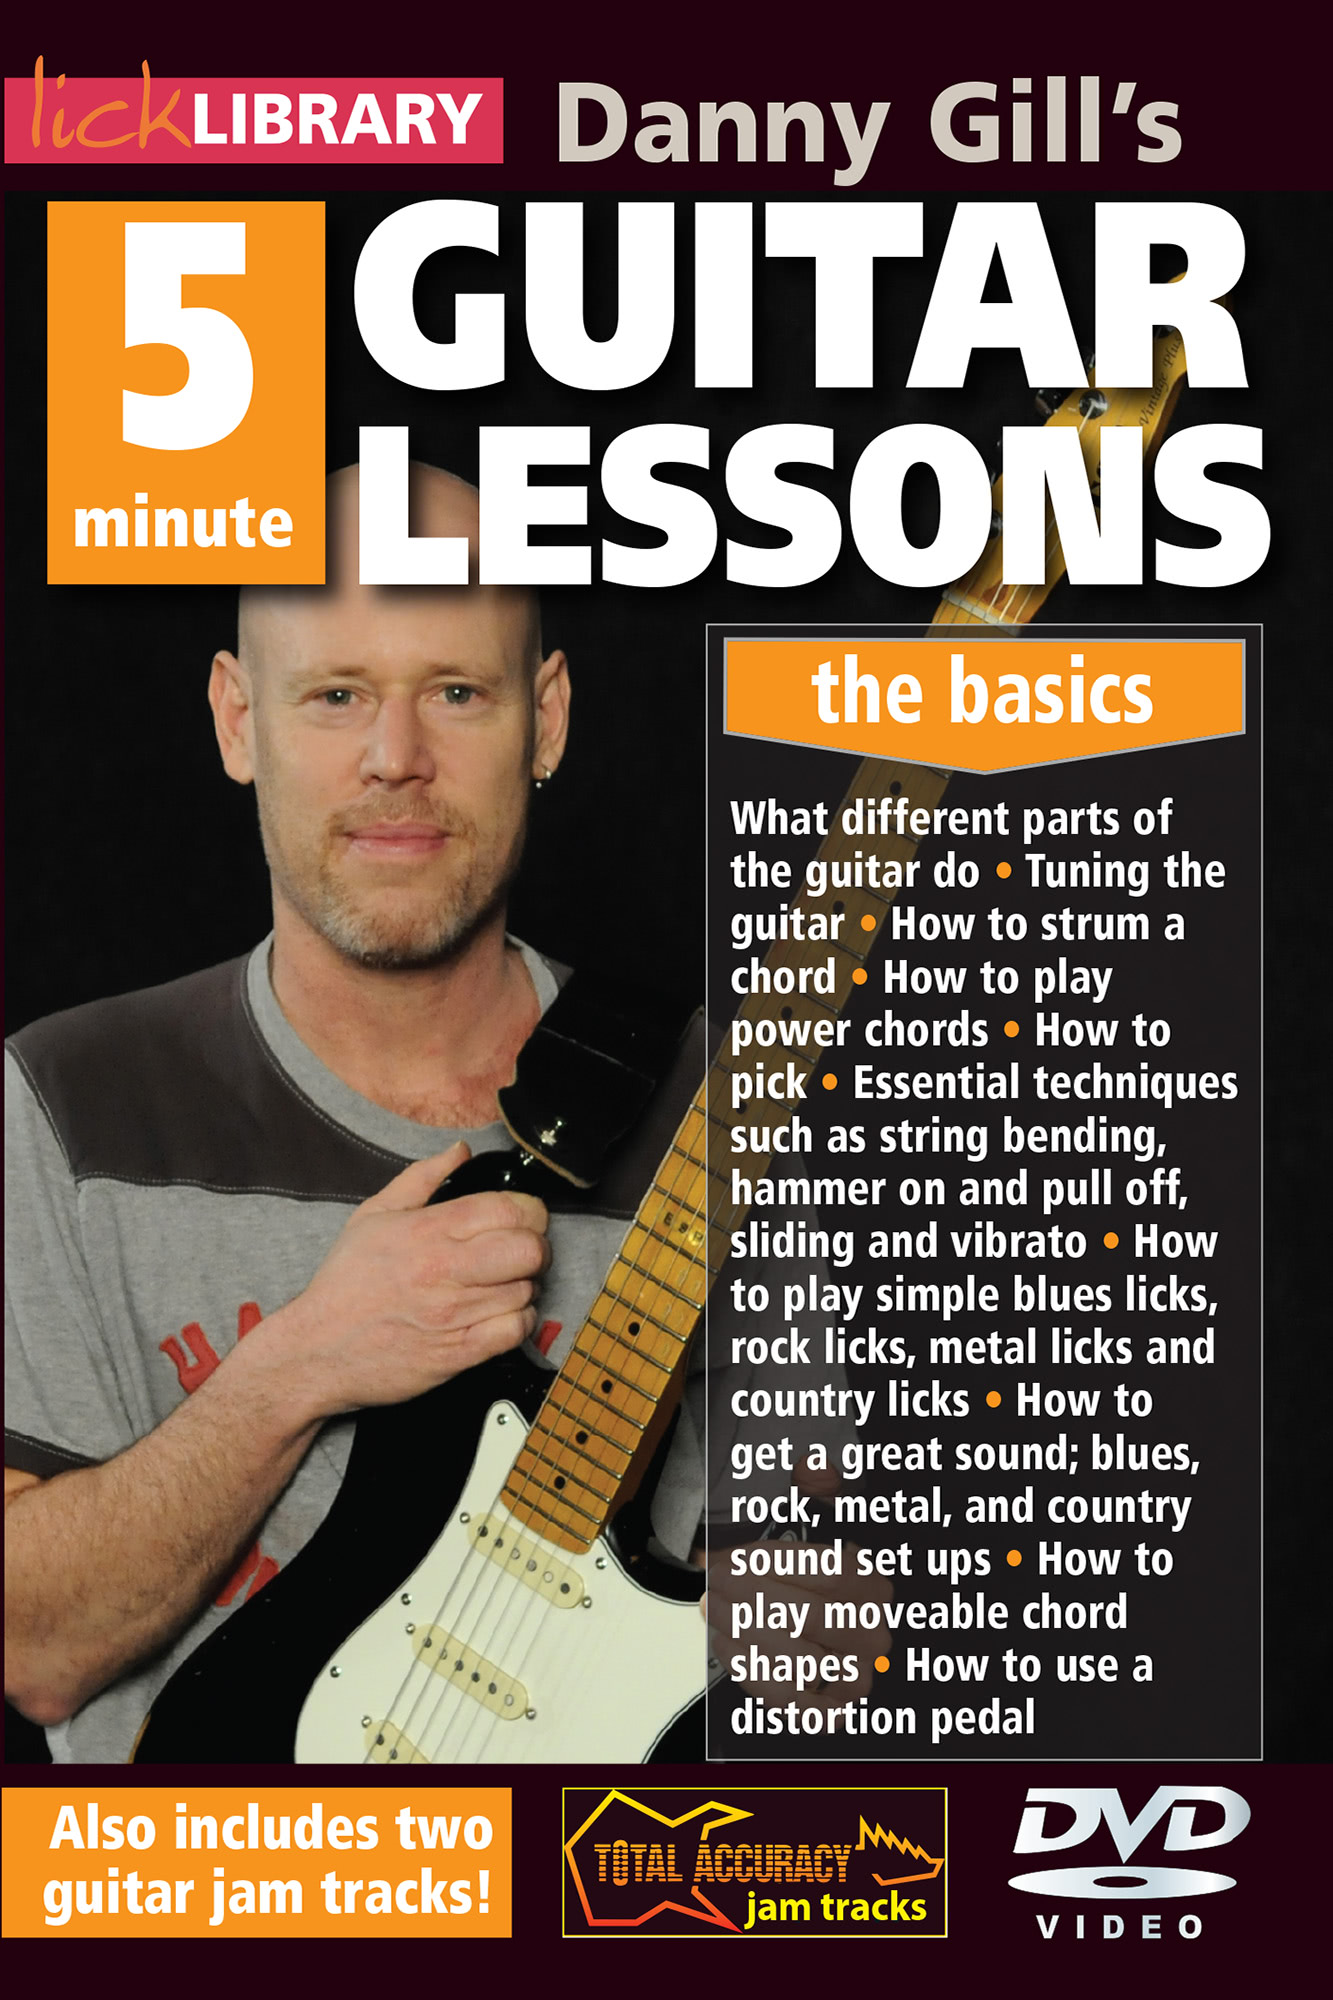 Danny Gill's 5 Minute Guitar Lessons